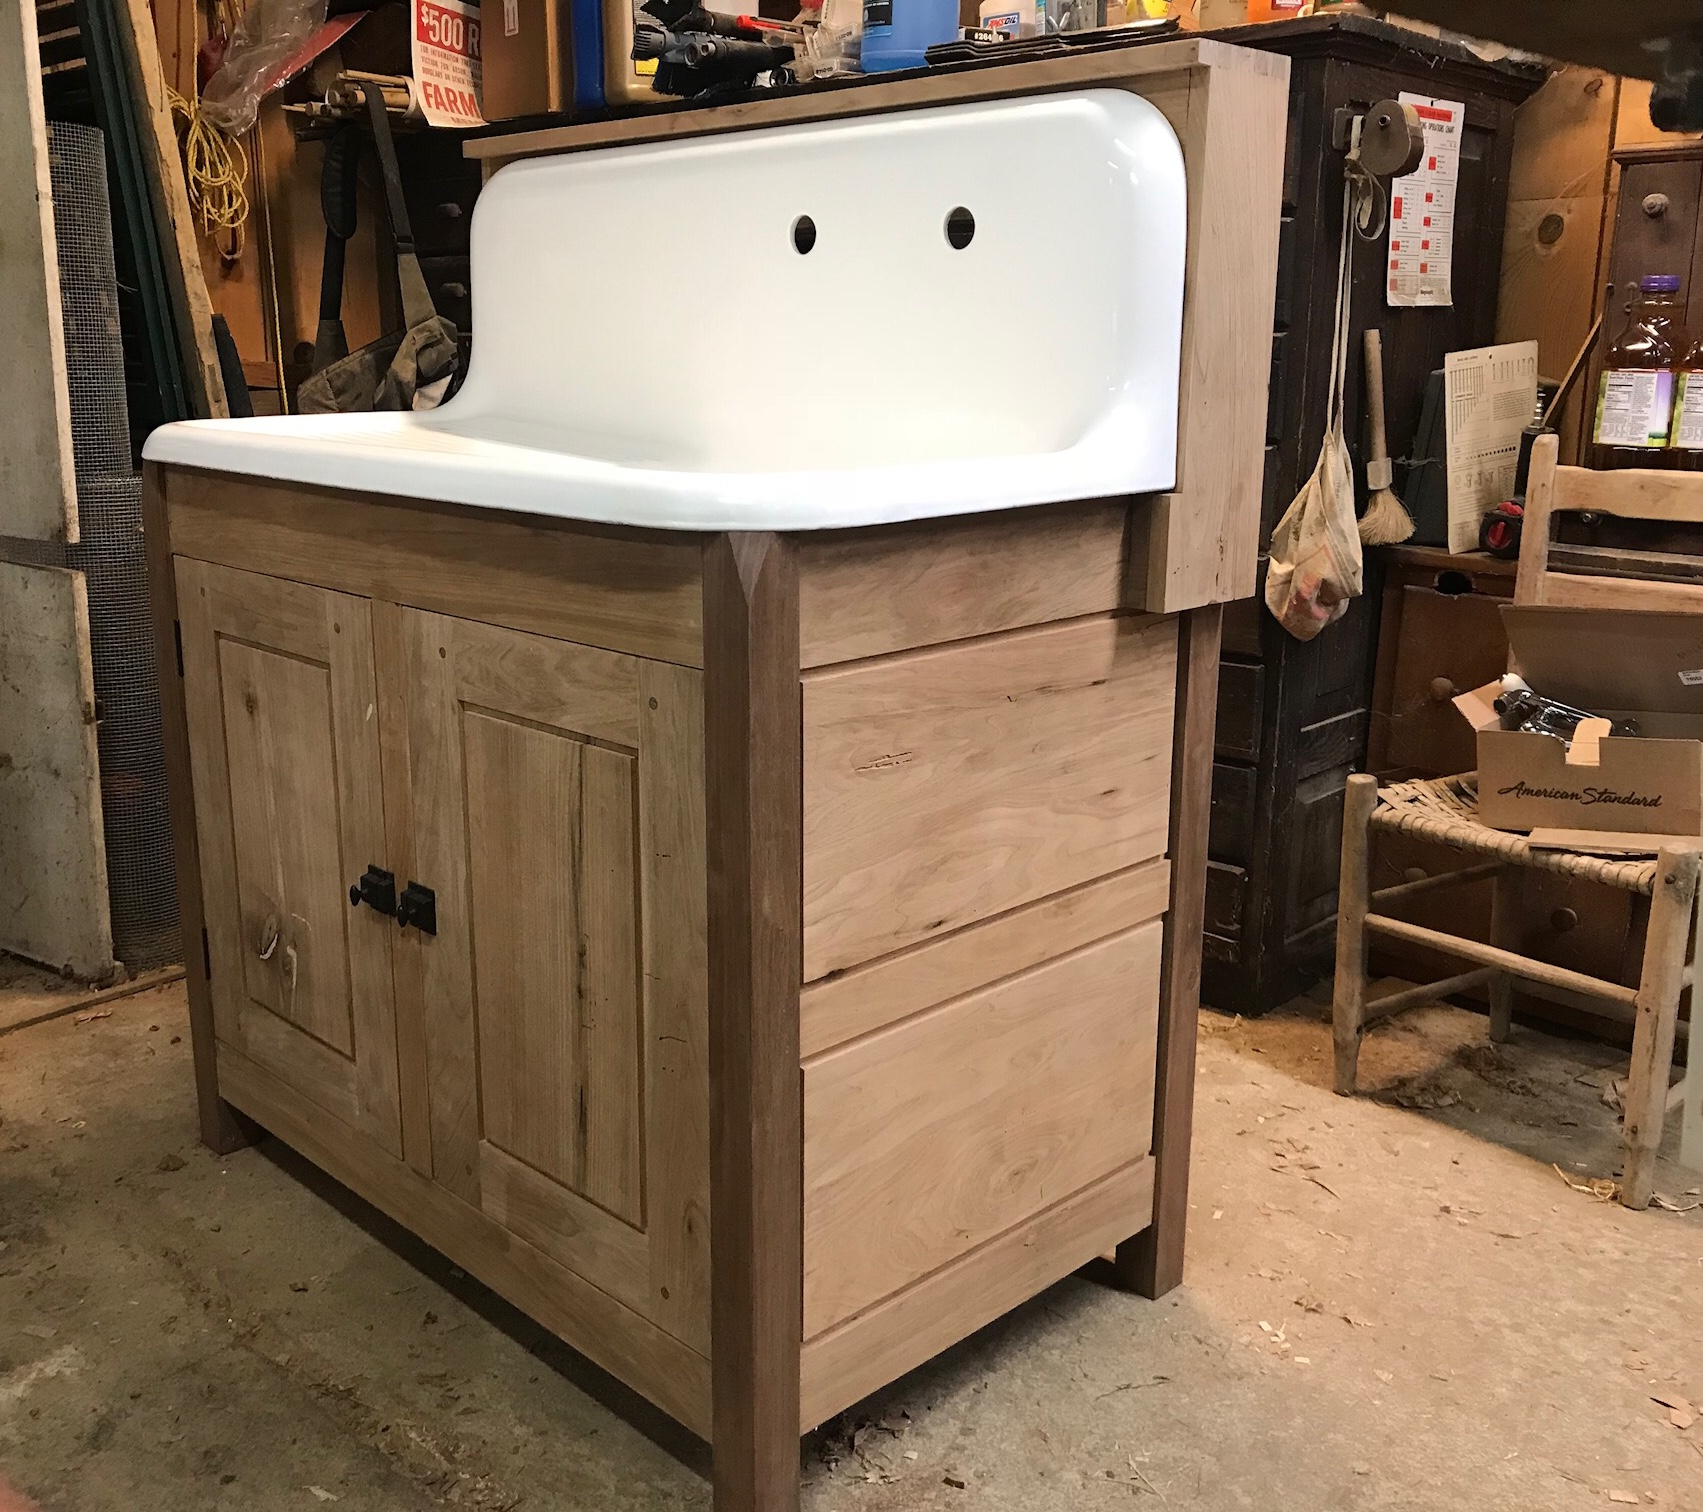 Kitchen Sink Base Cabinet by donhatch